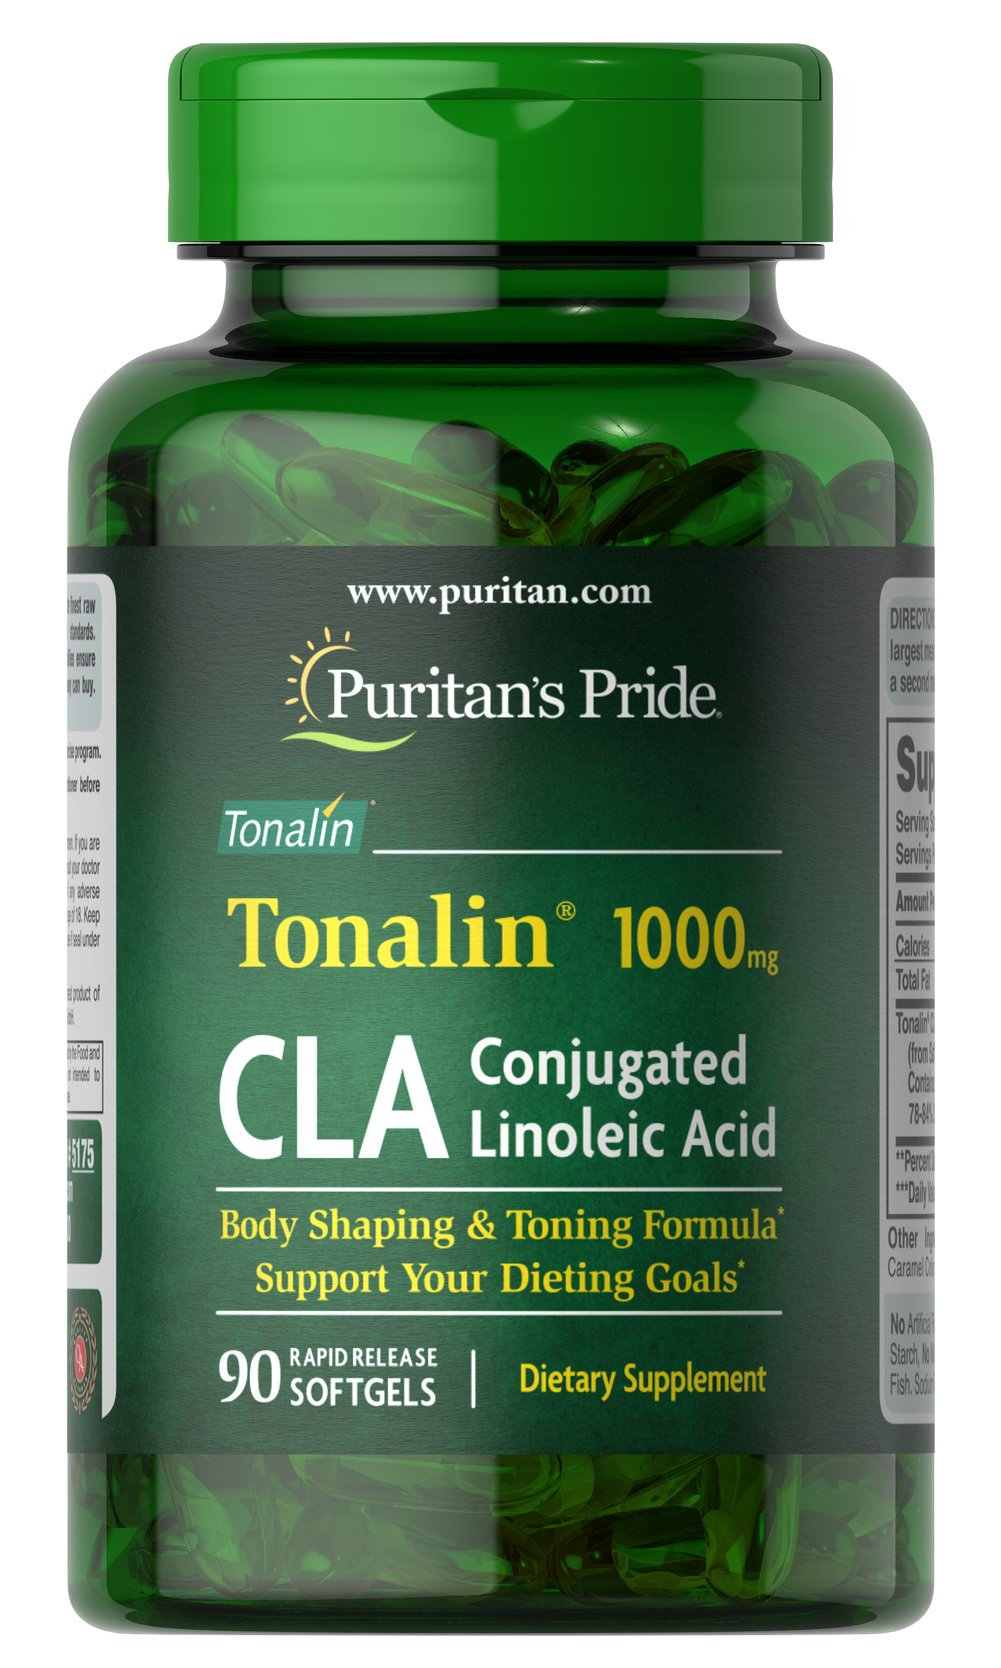 CLA 1000 mg Tonalin® <p>CLA (Conjugated Linoleic Acid) supports a healthy body composition**</p><p>Derived from Safflower Oil, CLA supports your dieting goals**</p><p>Rapid Release softgels are formulated for quick release into your system</p><p>Use with a reduced calorie diet and daily exercise program</p> 90 Softgels 1000 mg $31.99